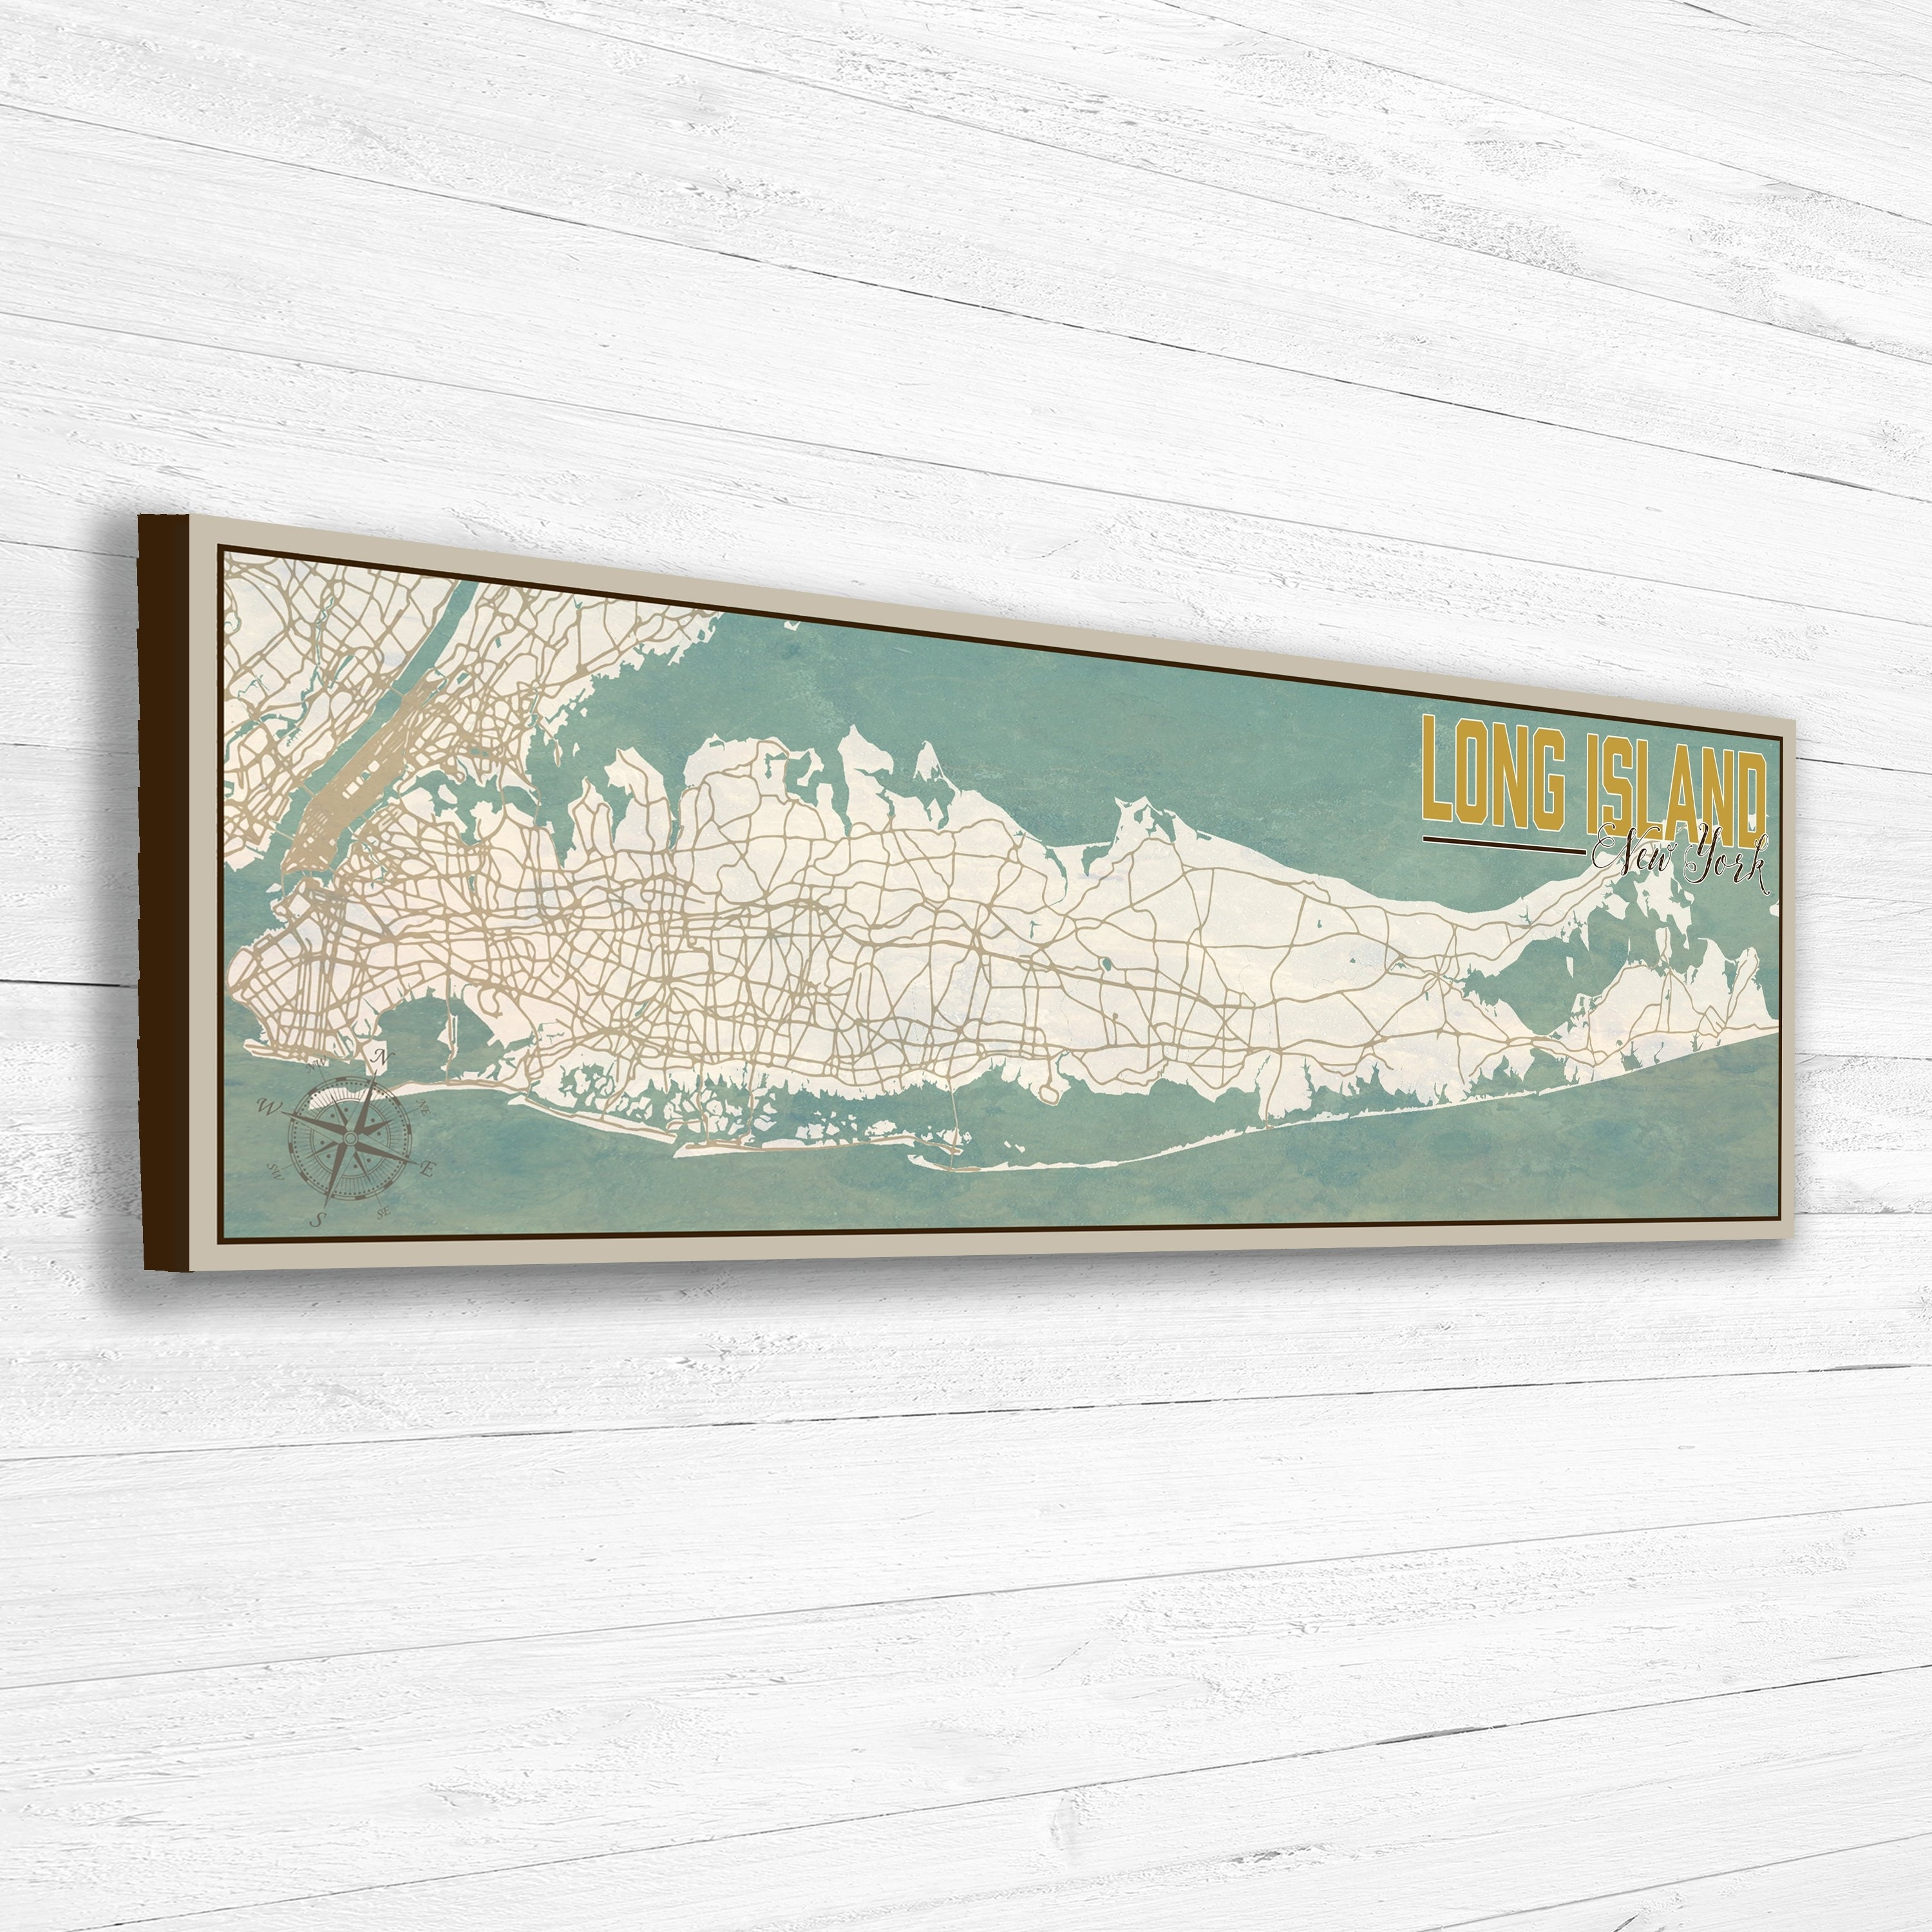 Long Island Ny Wall Art Map Framed North Fork Vintage Outdoor Inside 2018 Long Island Wall Art (Gallery 4 of 20)